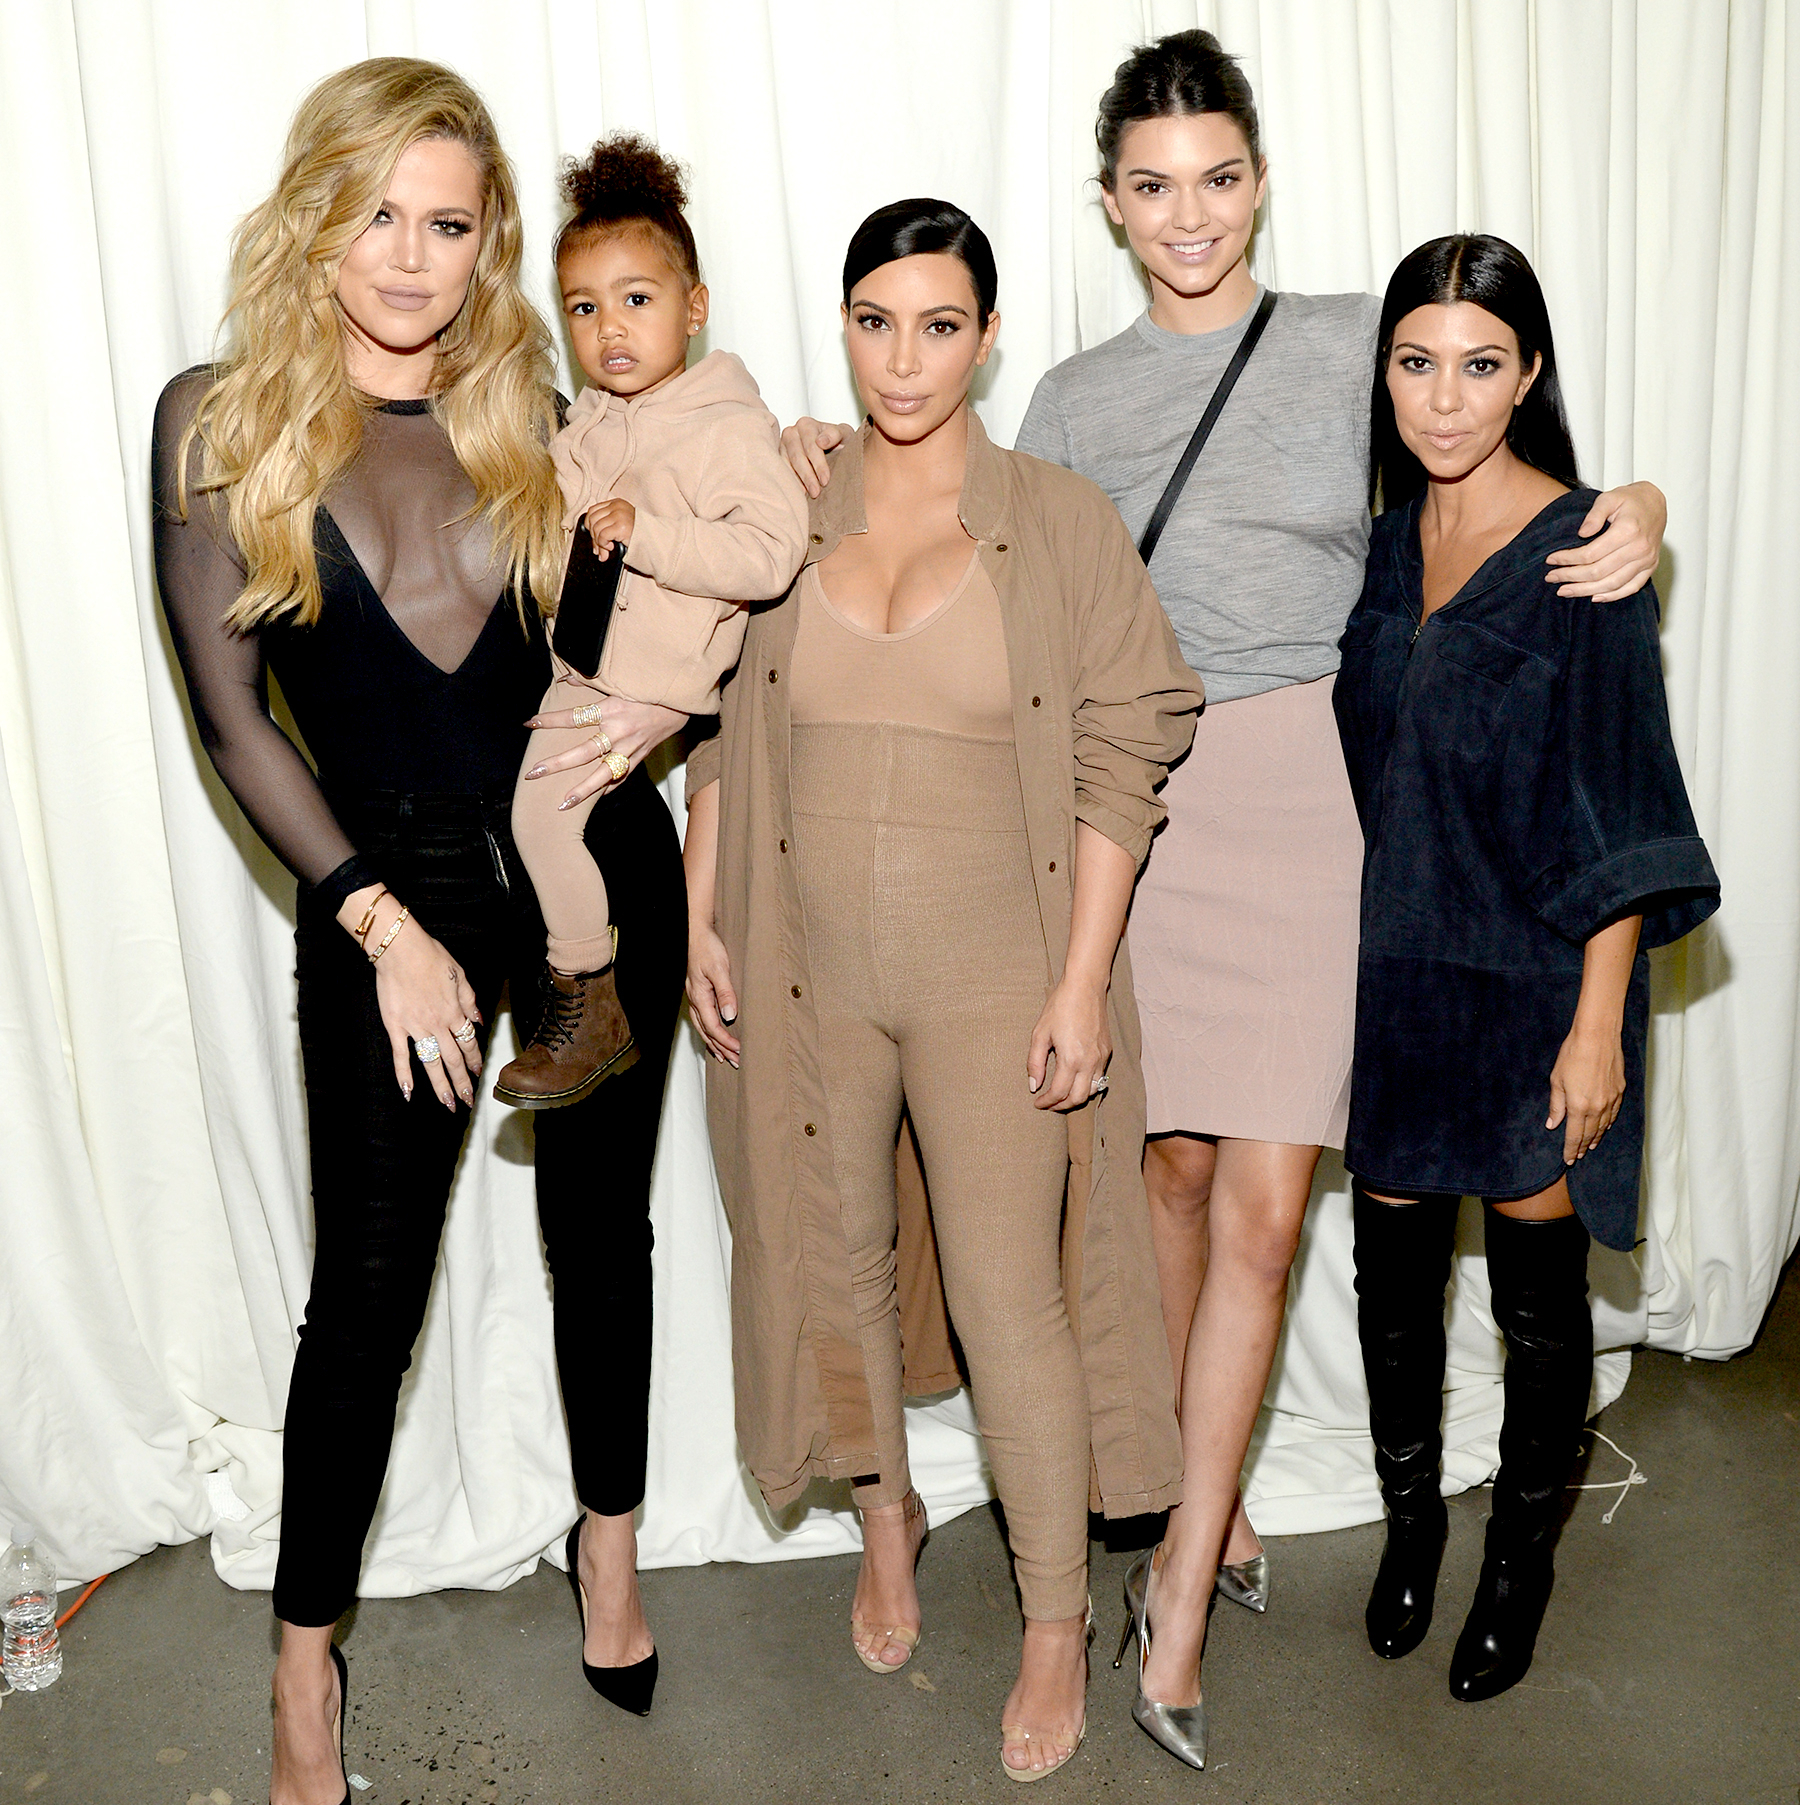 North West and Kim Kardashian West attend Kanye West Yeezy Season 2 during New York Fashion Week at Skylight Modern on September 16, 2015 in New York City.